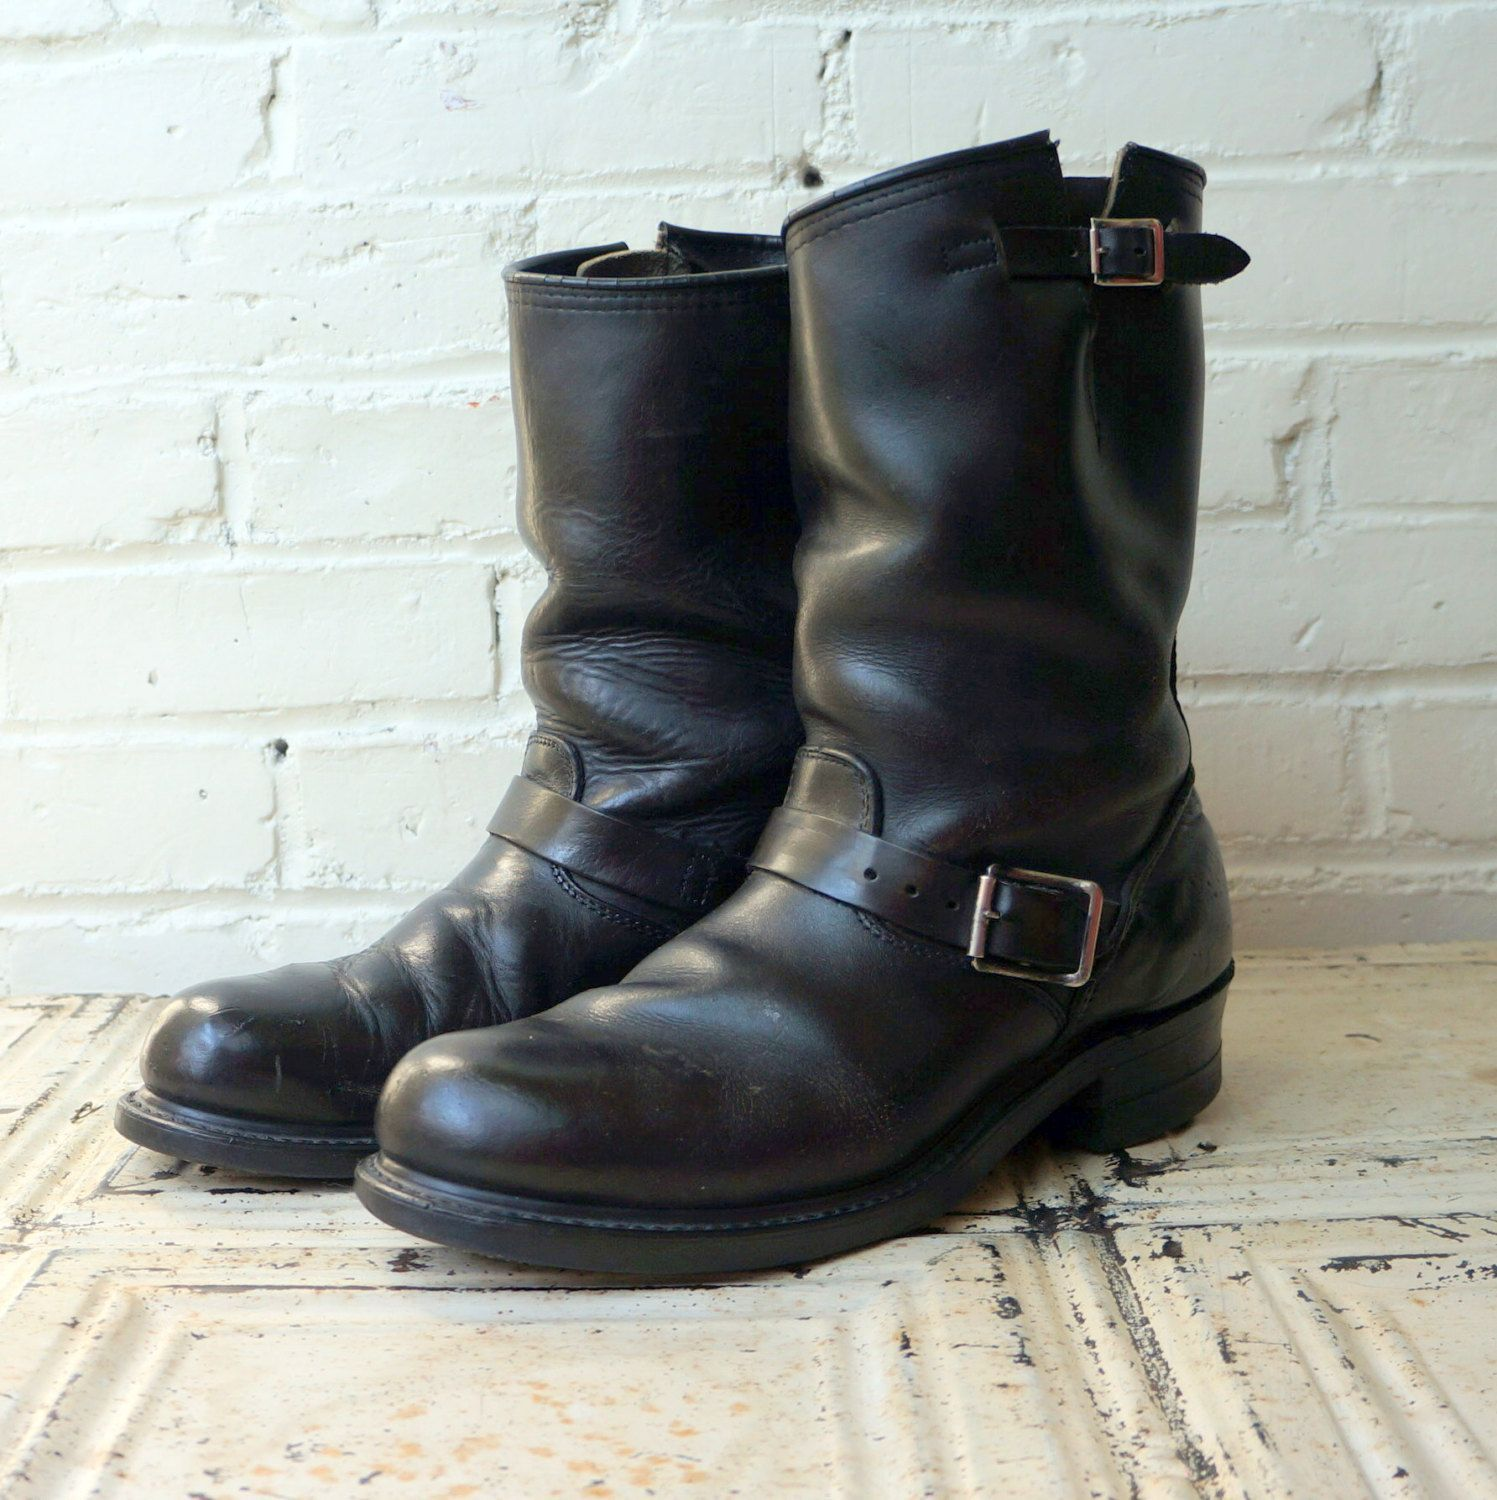 Outlaw Rider 1960s Vintage Engineer Boots Mens 8.5 EE Wide Biker ...